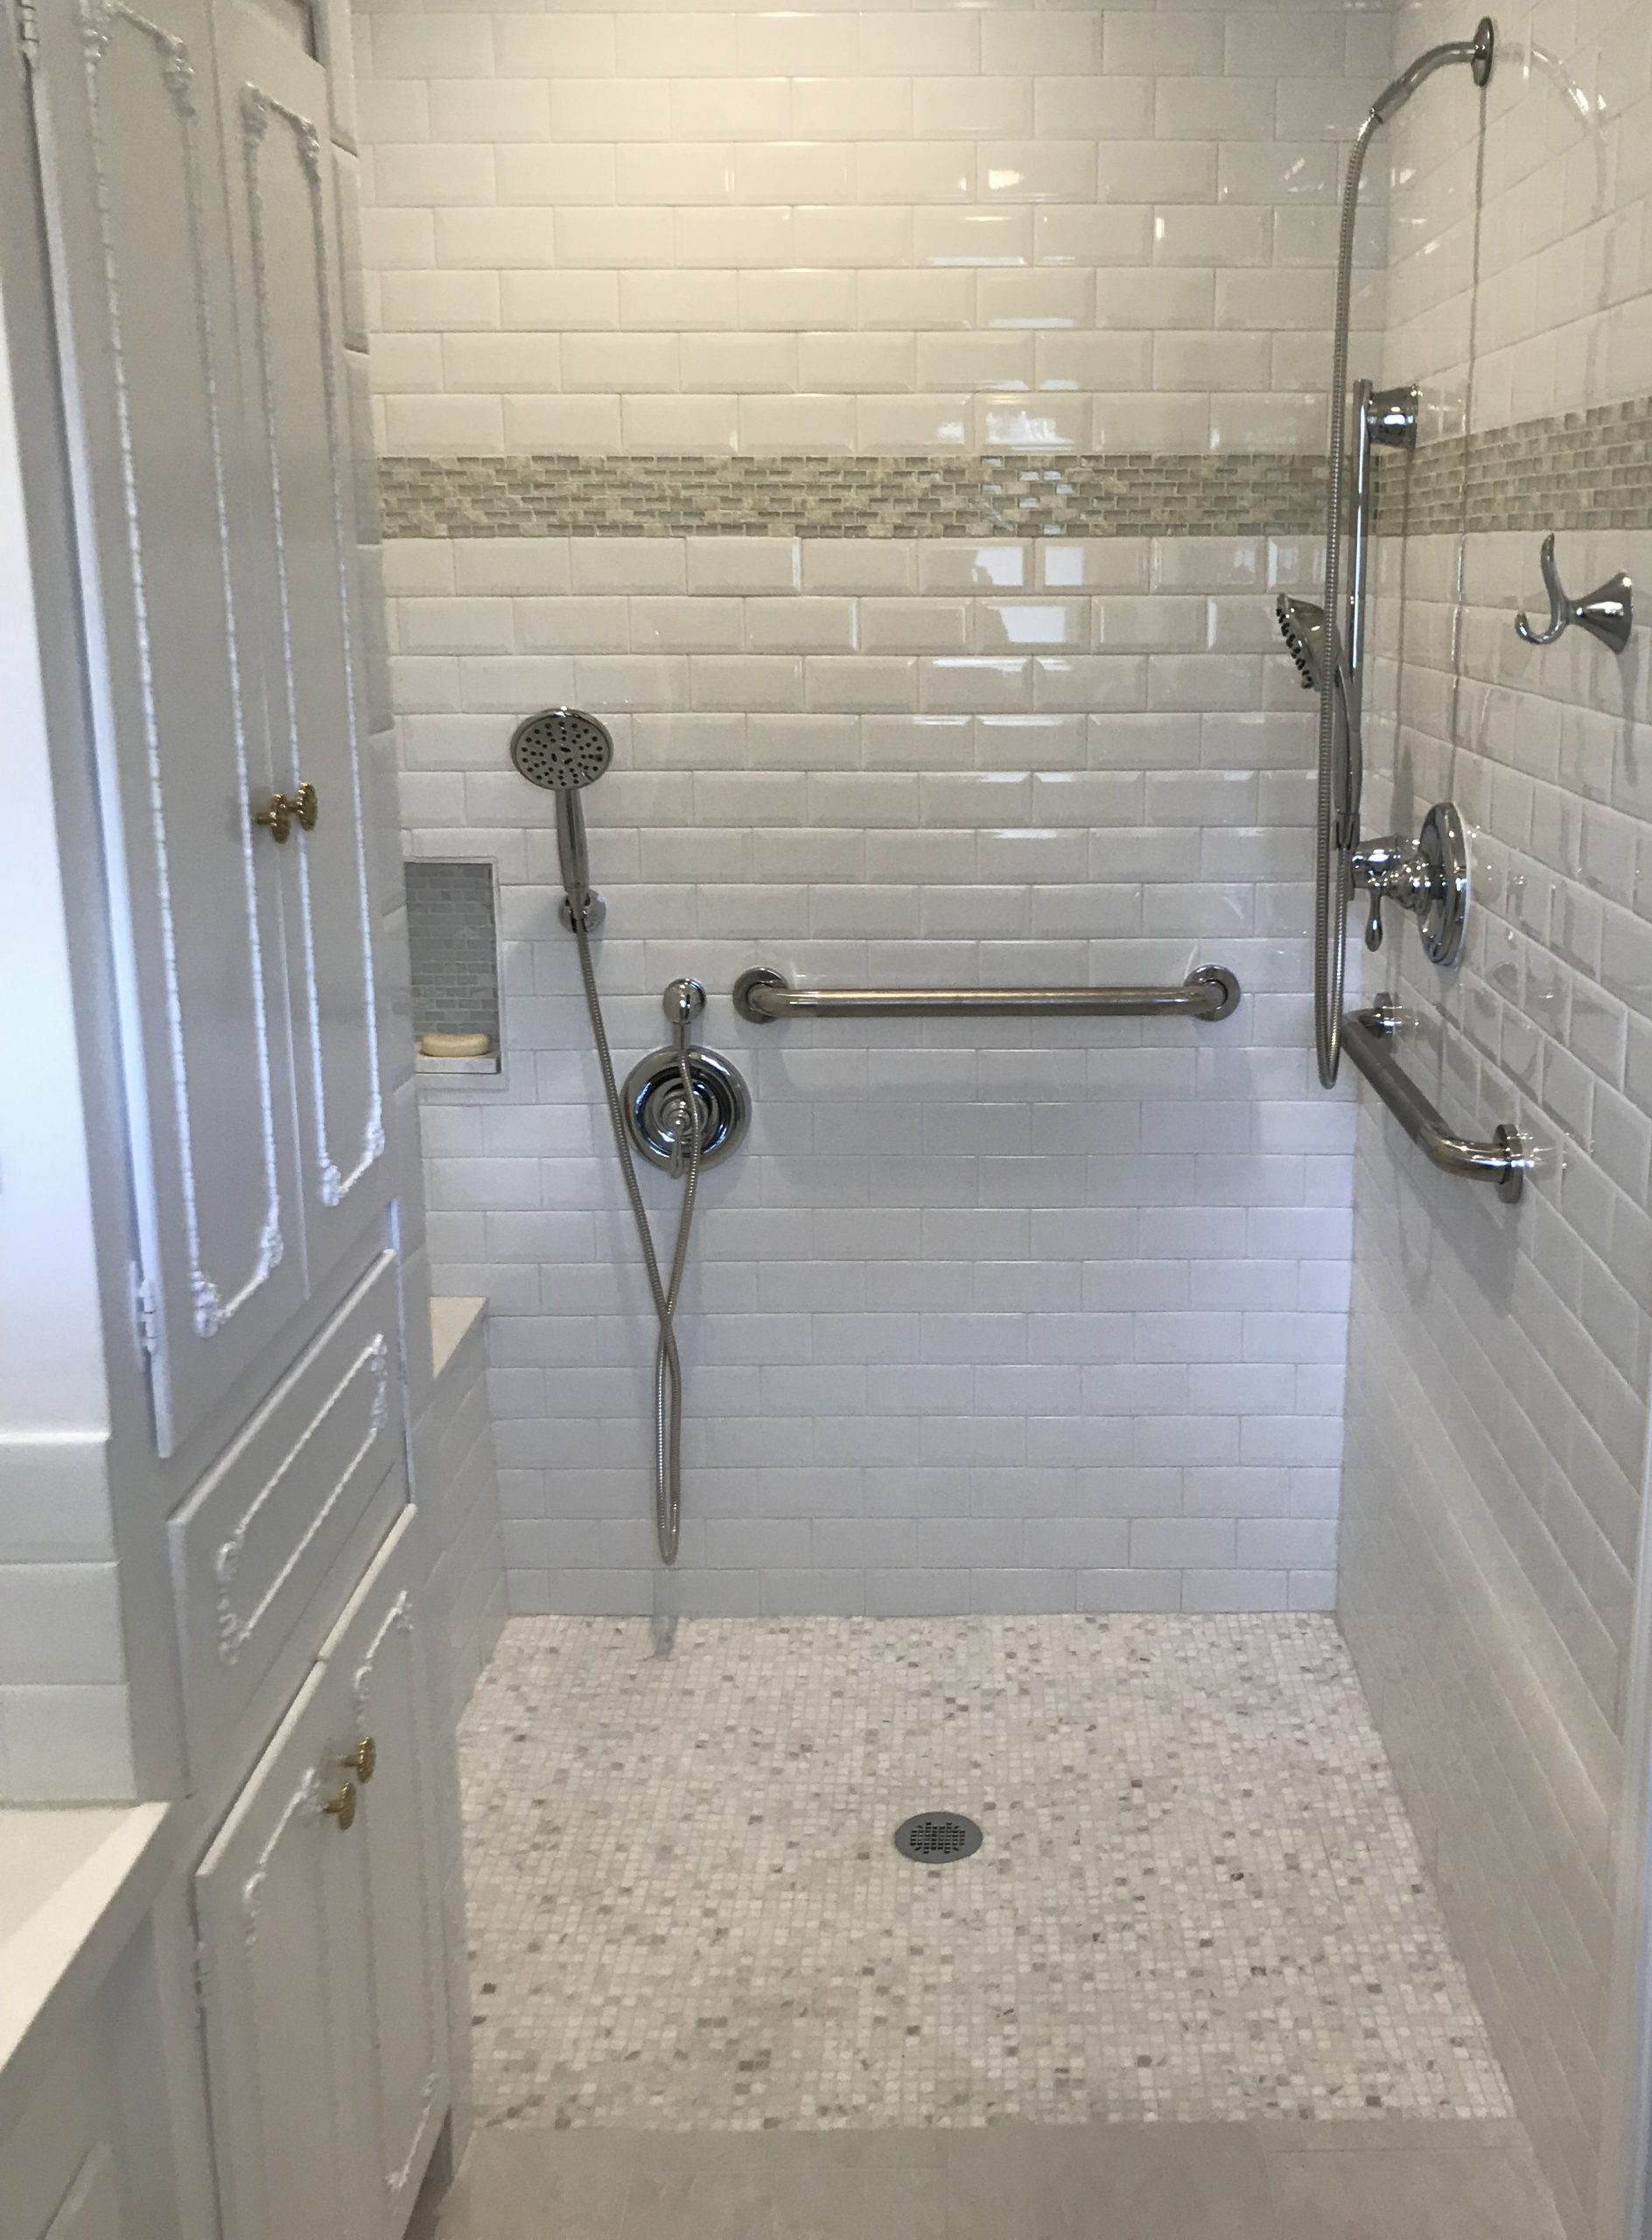 A remodeled ADA compliant bathroom with custom cabinets, floors, multiple shower heads and plumbing